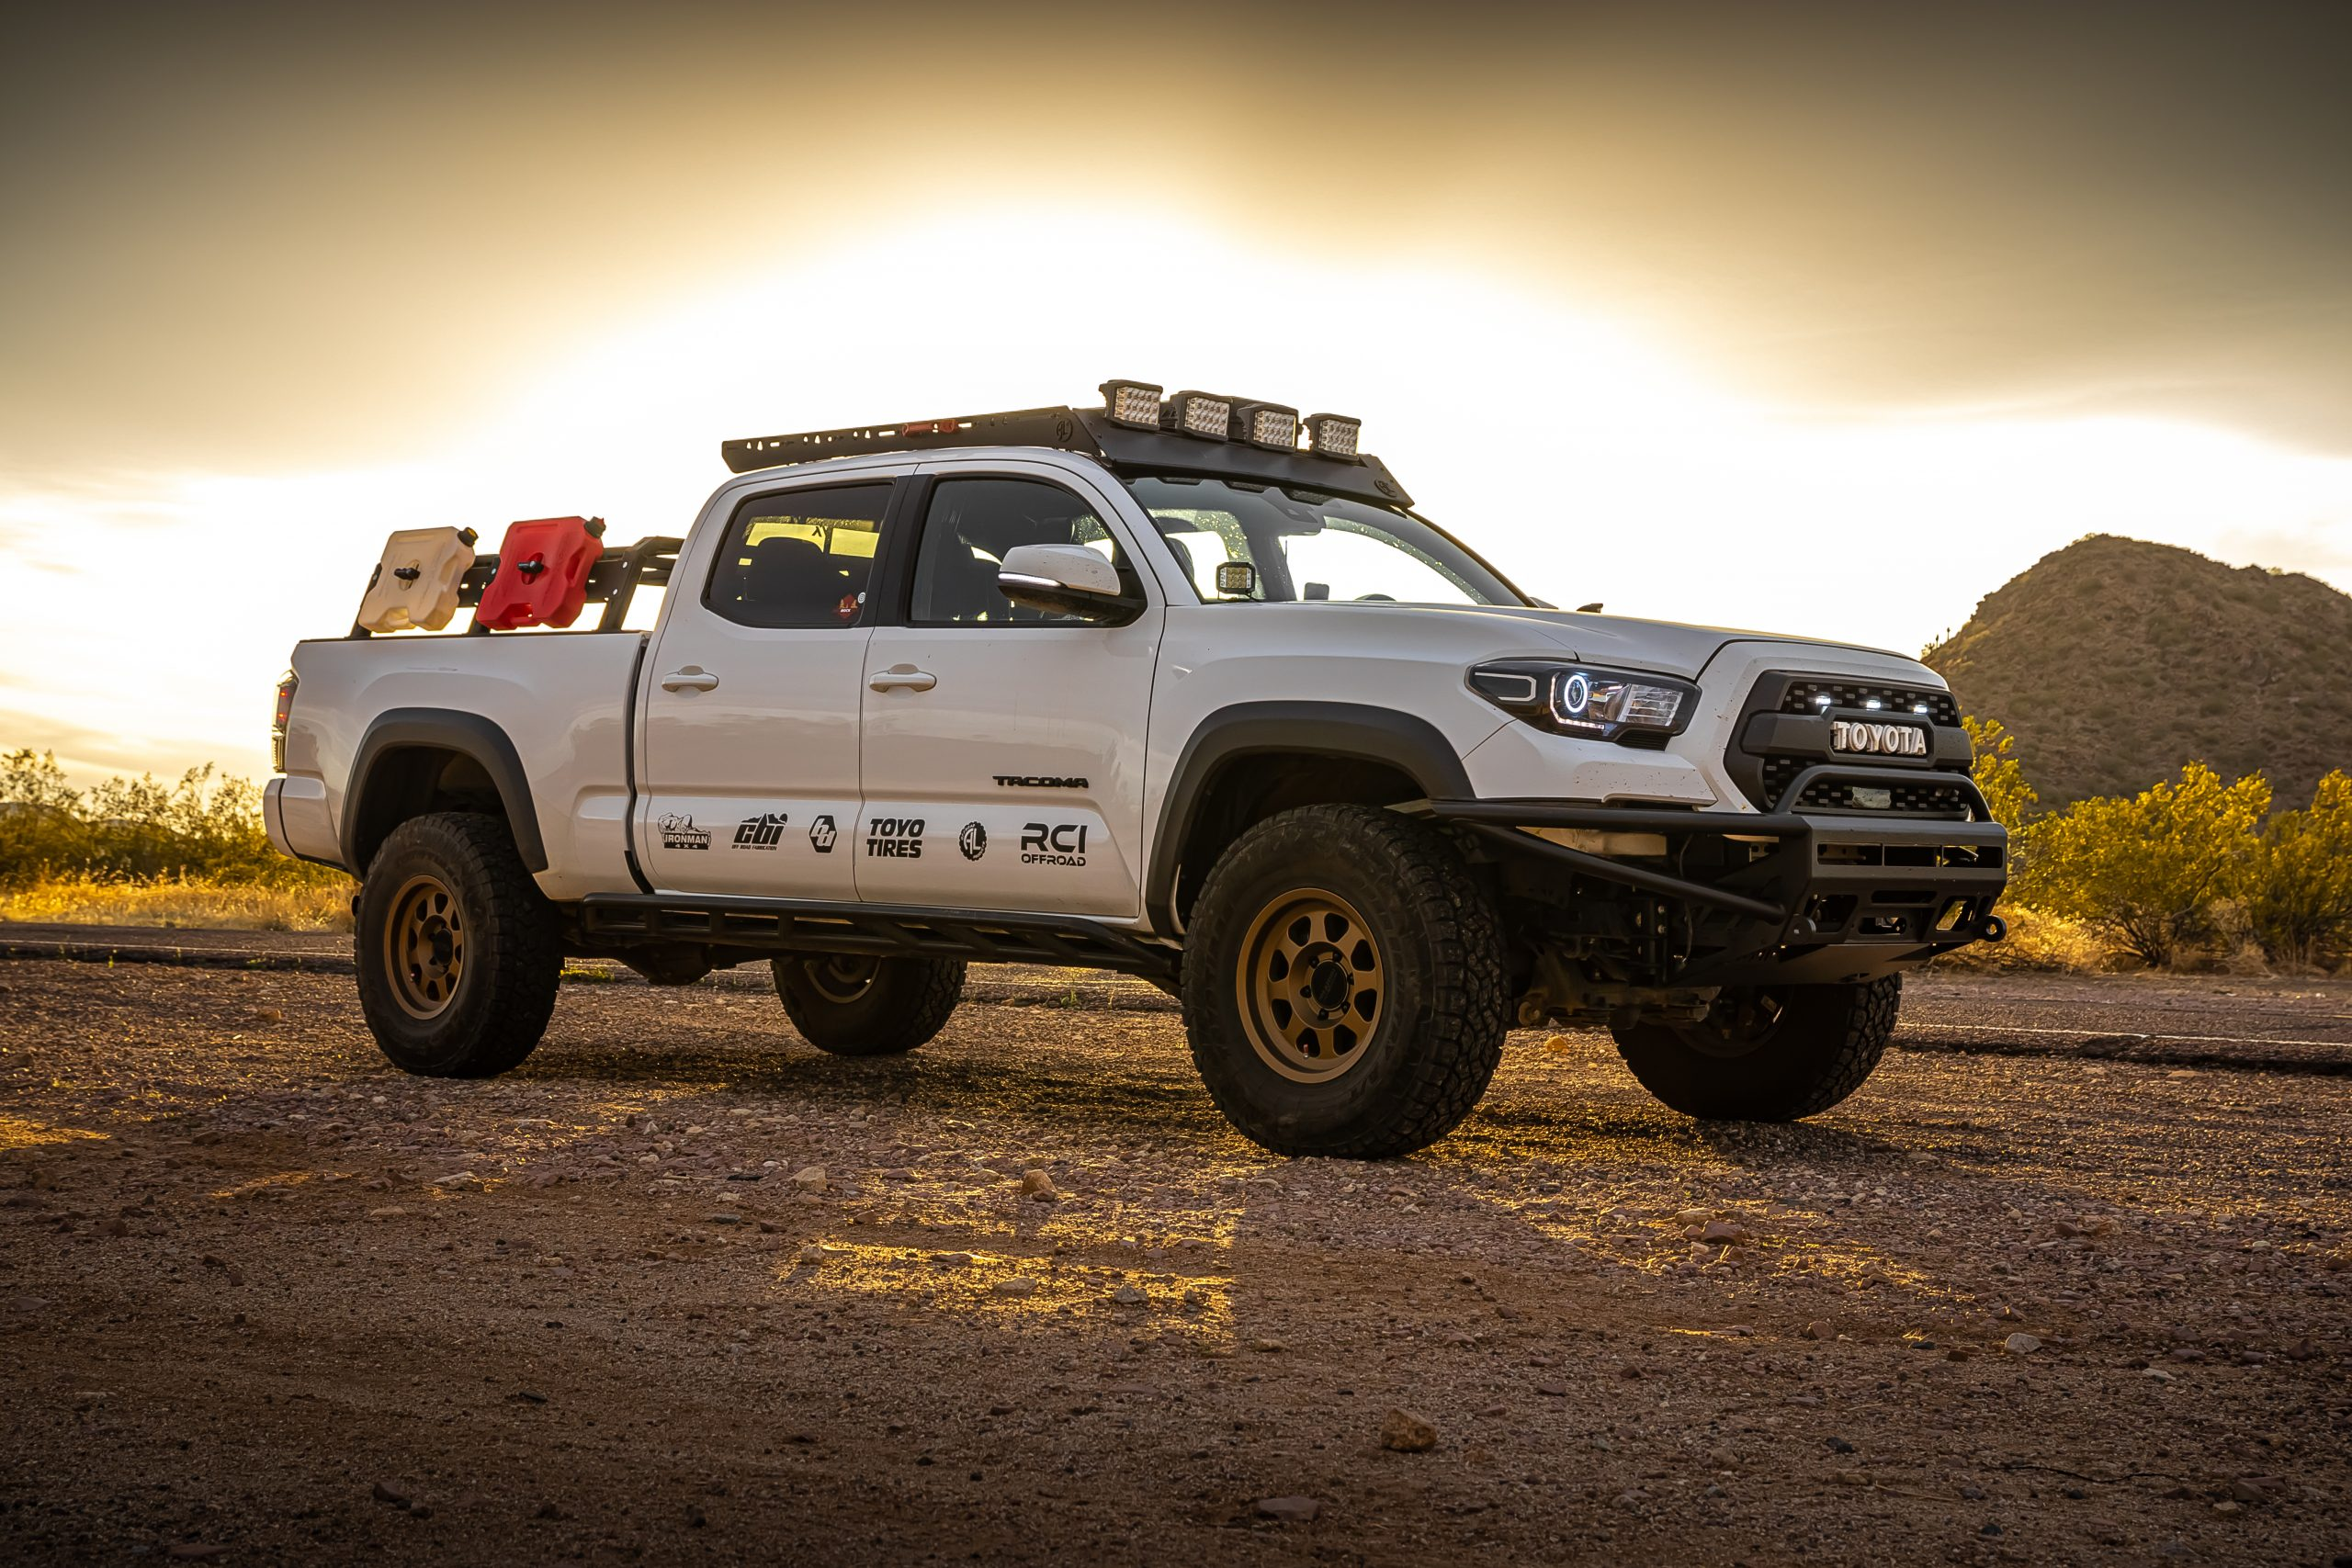 Lifted Super White 3rd Gen Tacoma on 33s with BAMF Hybrid Front Bumper and Ironman LED Lights